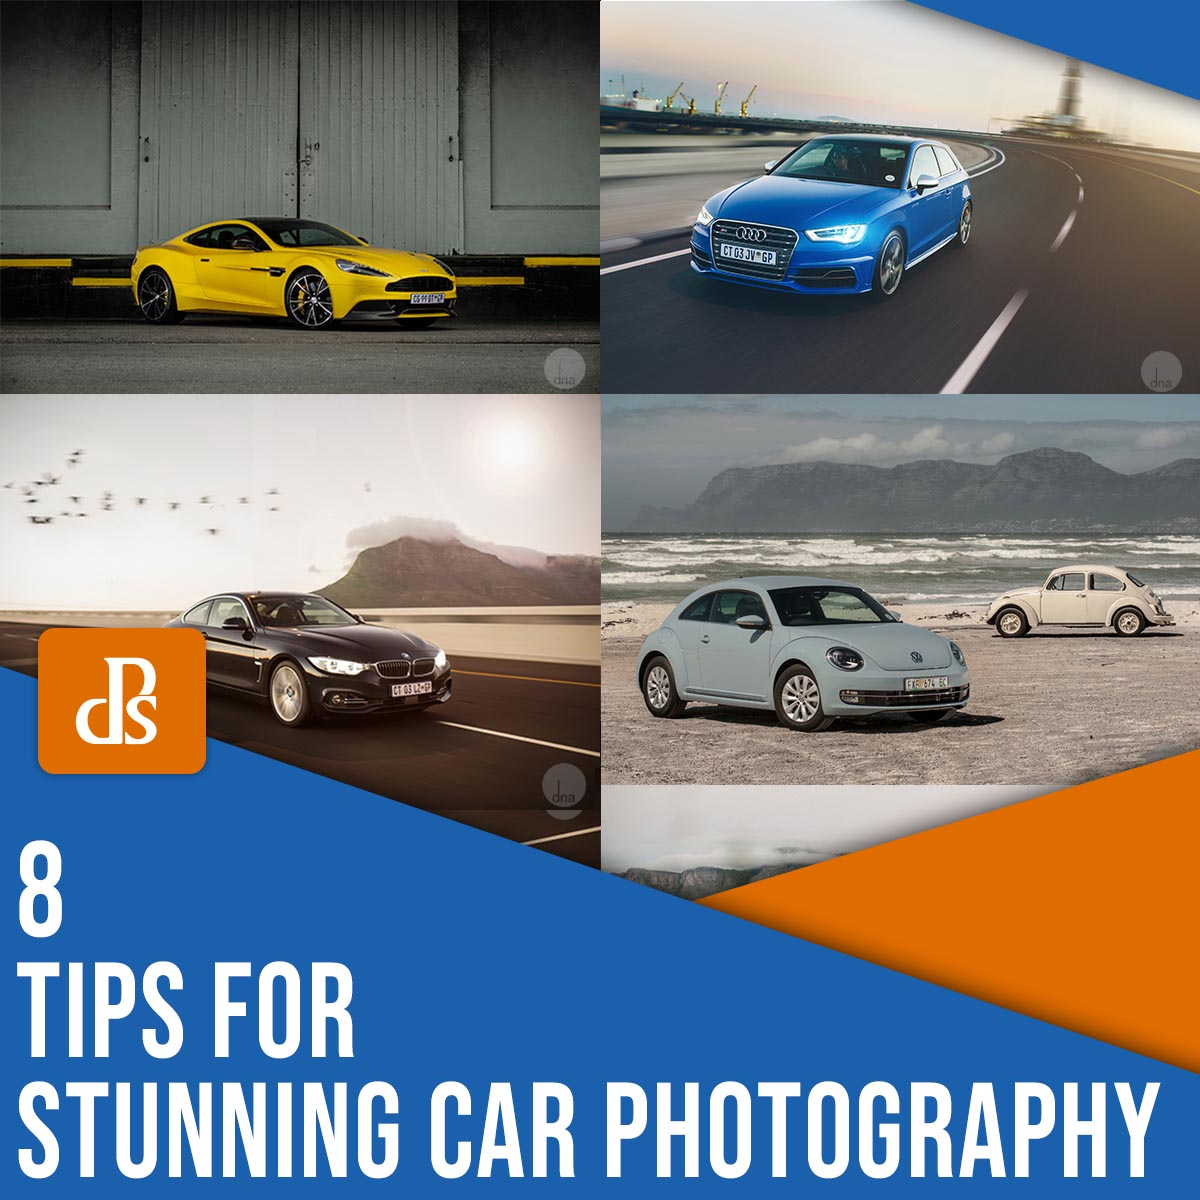 8 tips for stunning car photography